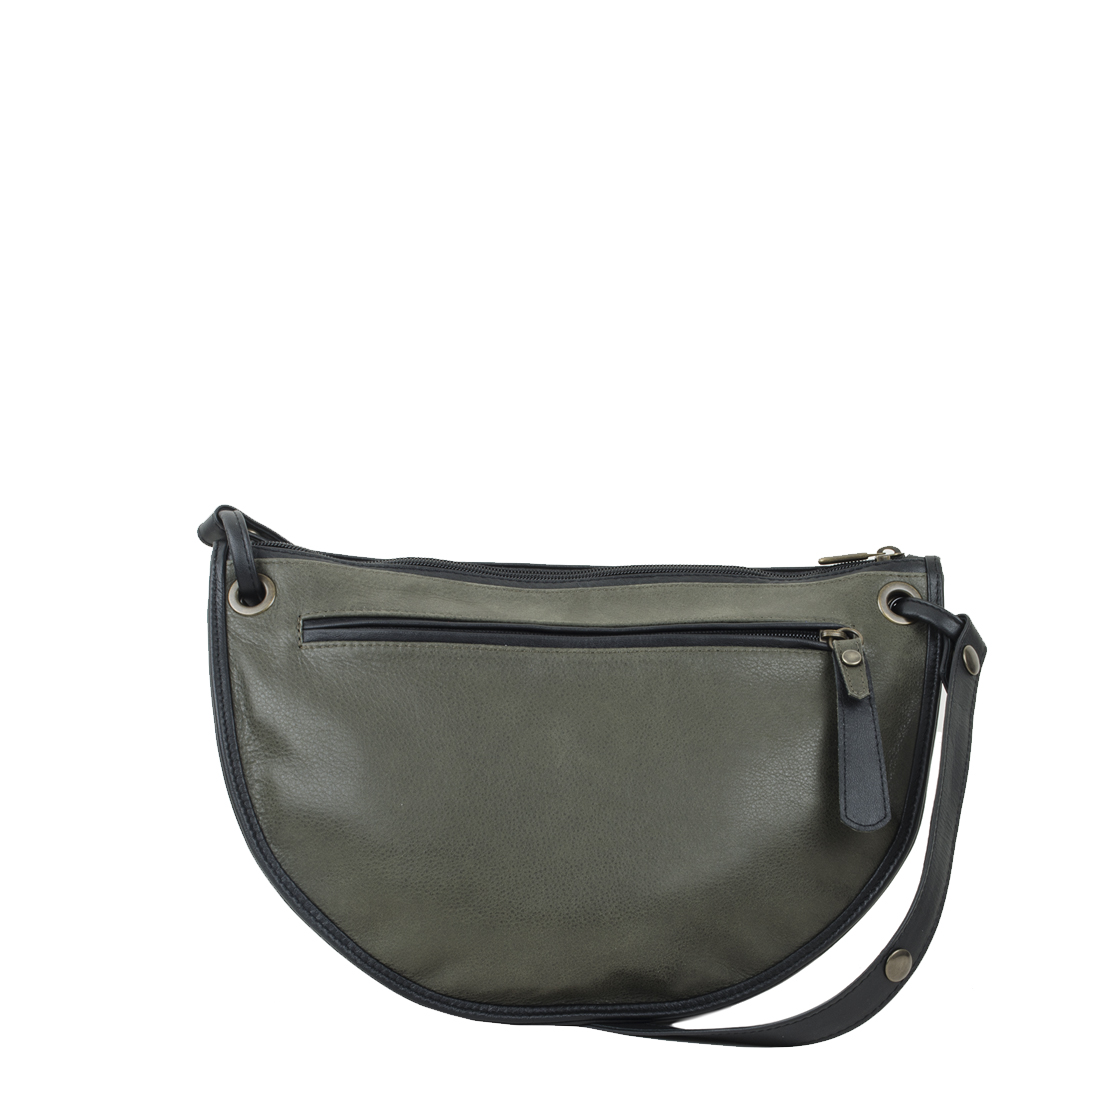 Rachel Olive Leather Across Body Bag